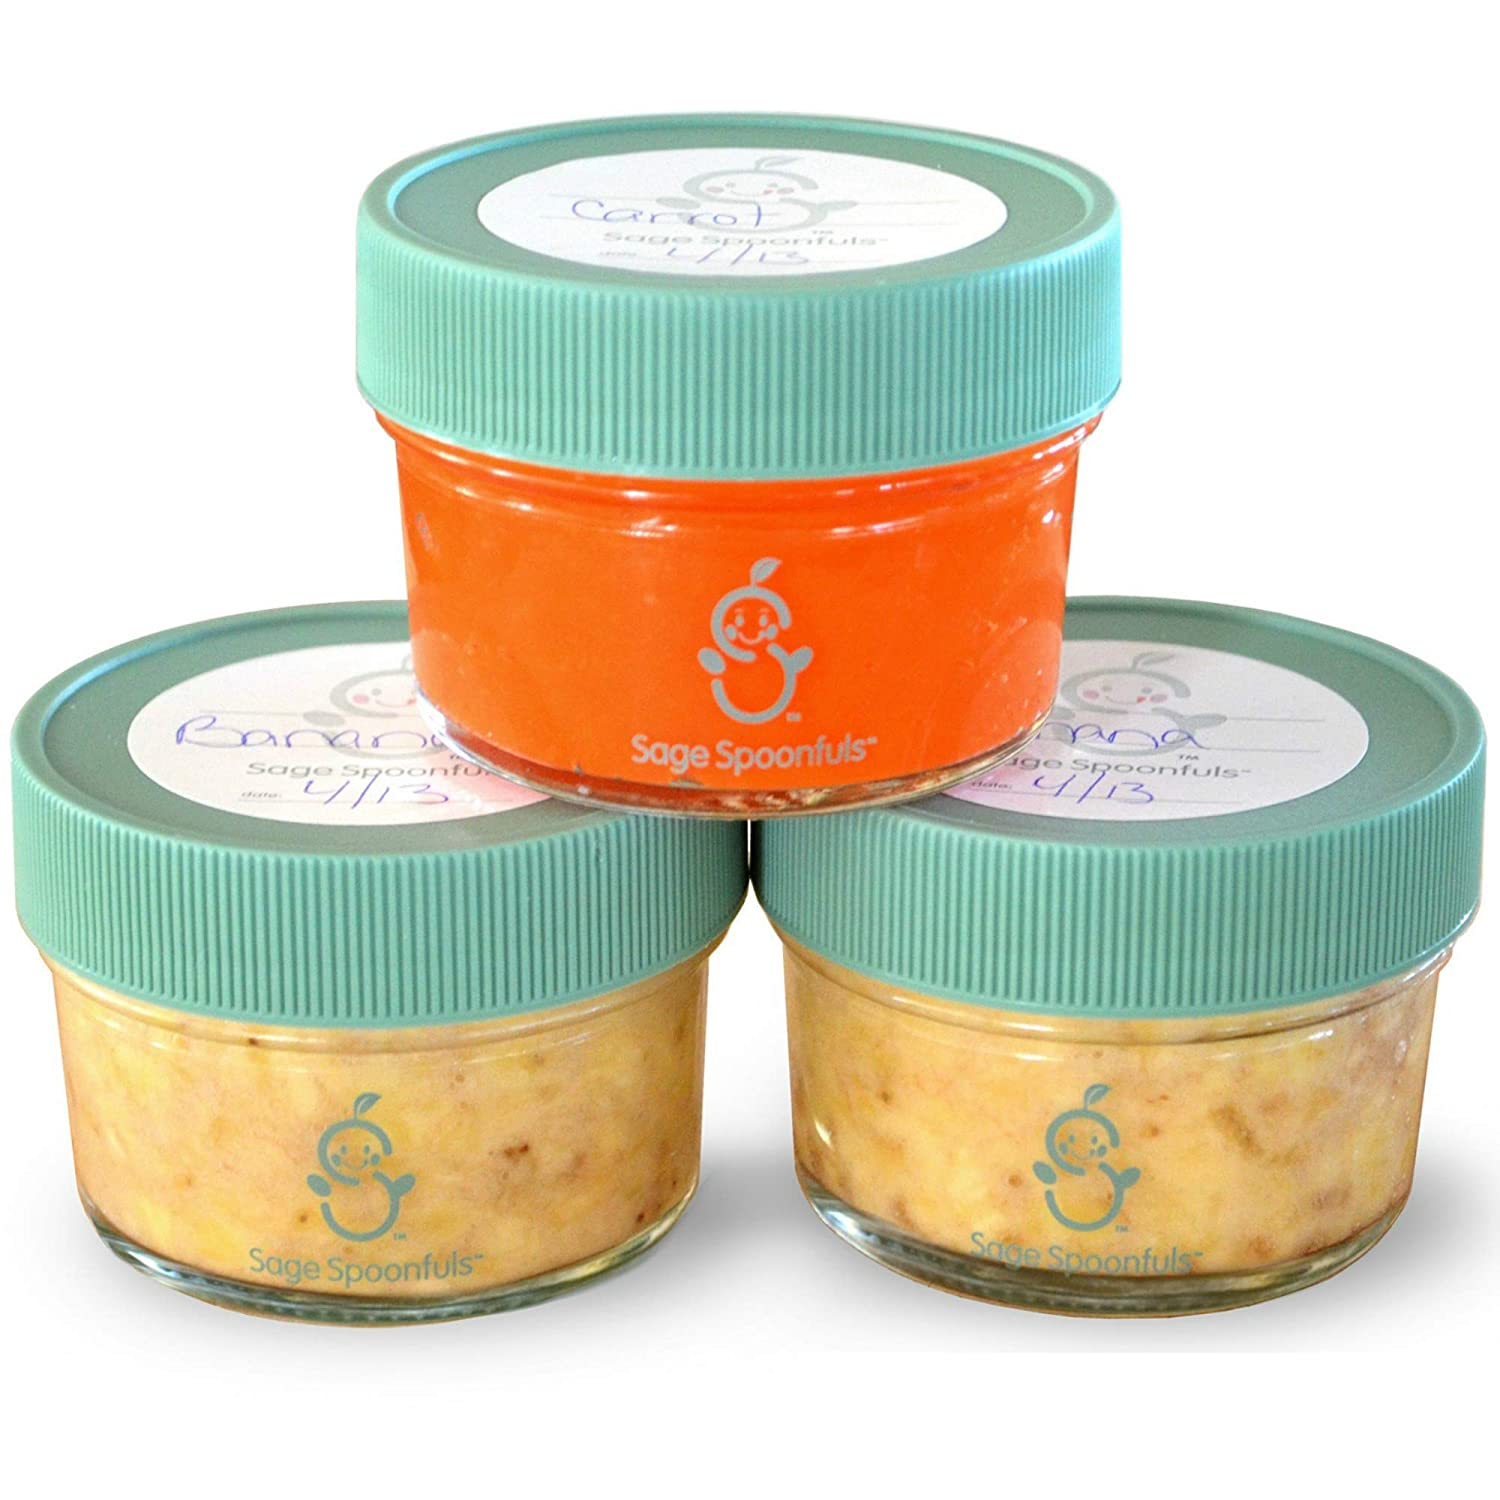 Glass Baby Food Storage Containers | Set of 6 | 4oz Glass Baby Food Jars and Lids | 30 Labels | Freezer Storage | Reusable Glass Baby Food Jars | Microwave & Dishwasher Safe | for Babies & Infants